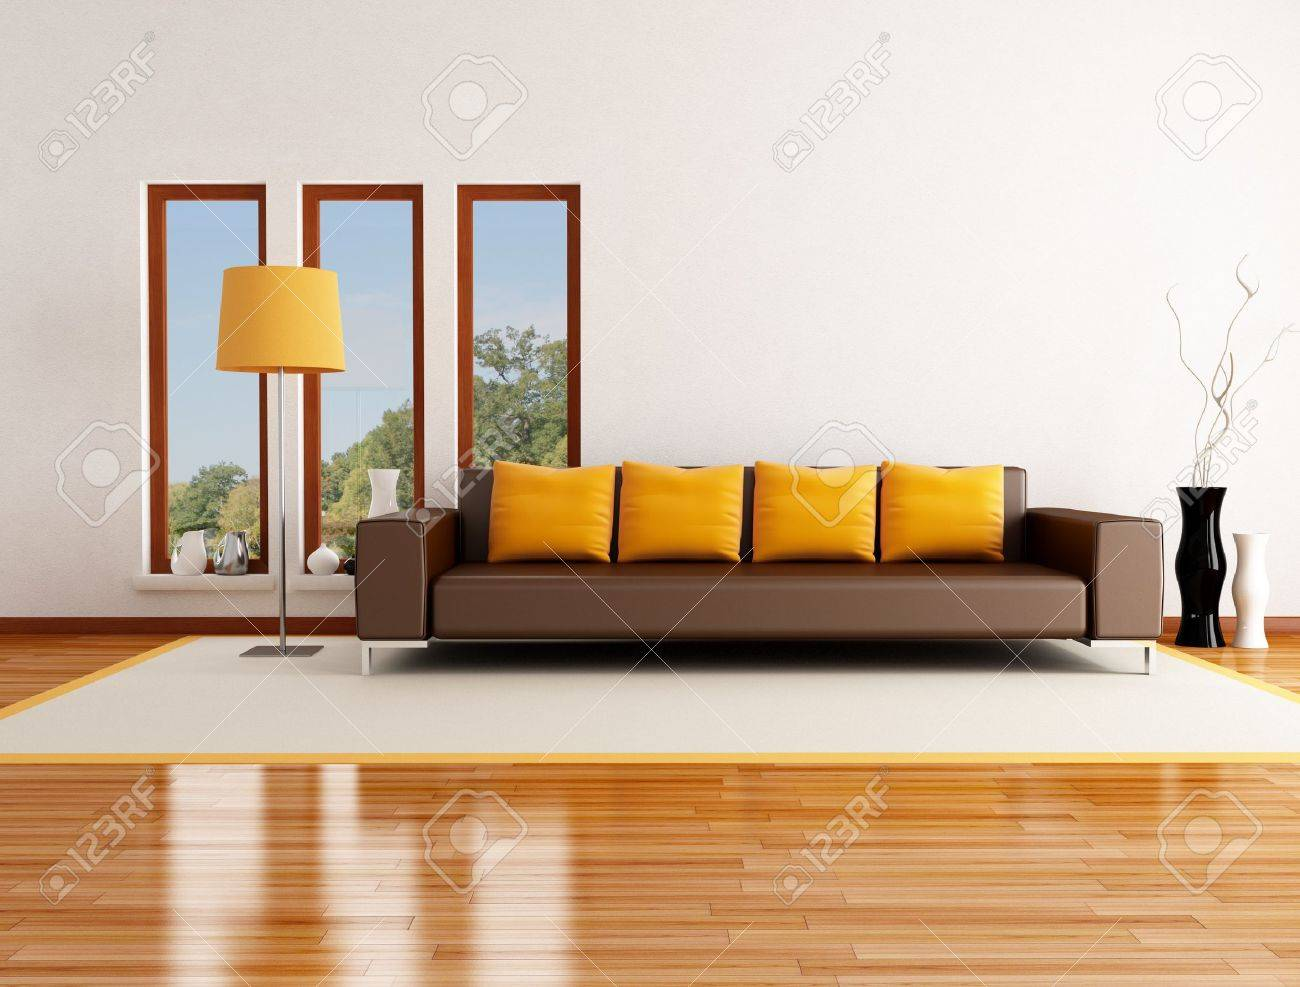 Modern Living Room In A Country House   Rendering   The Image On Background  Is A Part 53